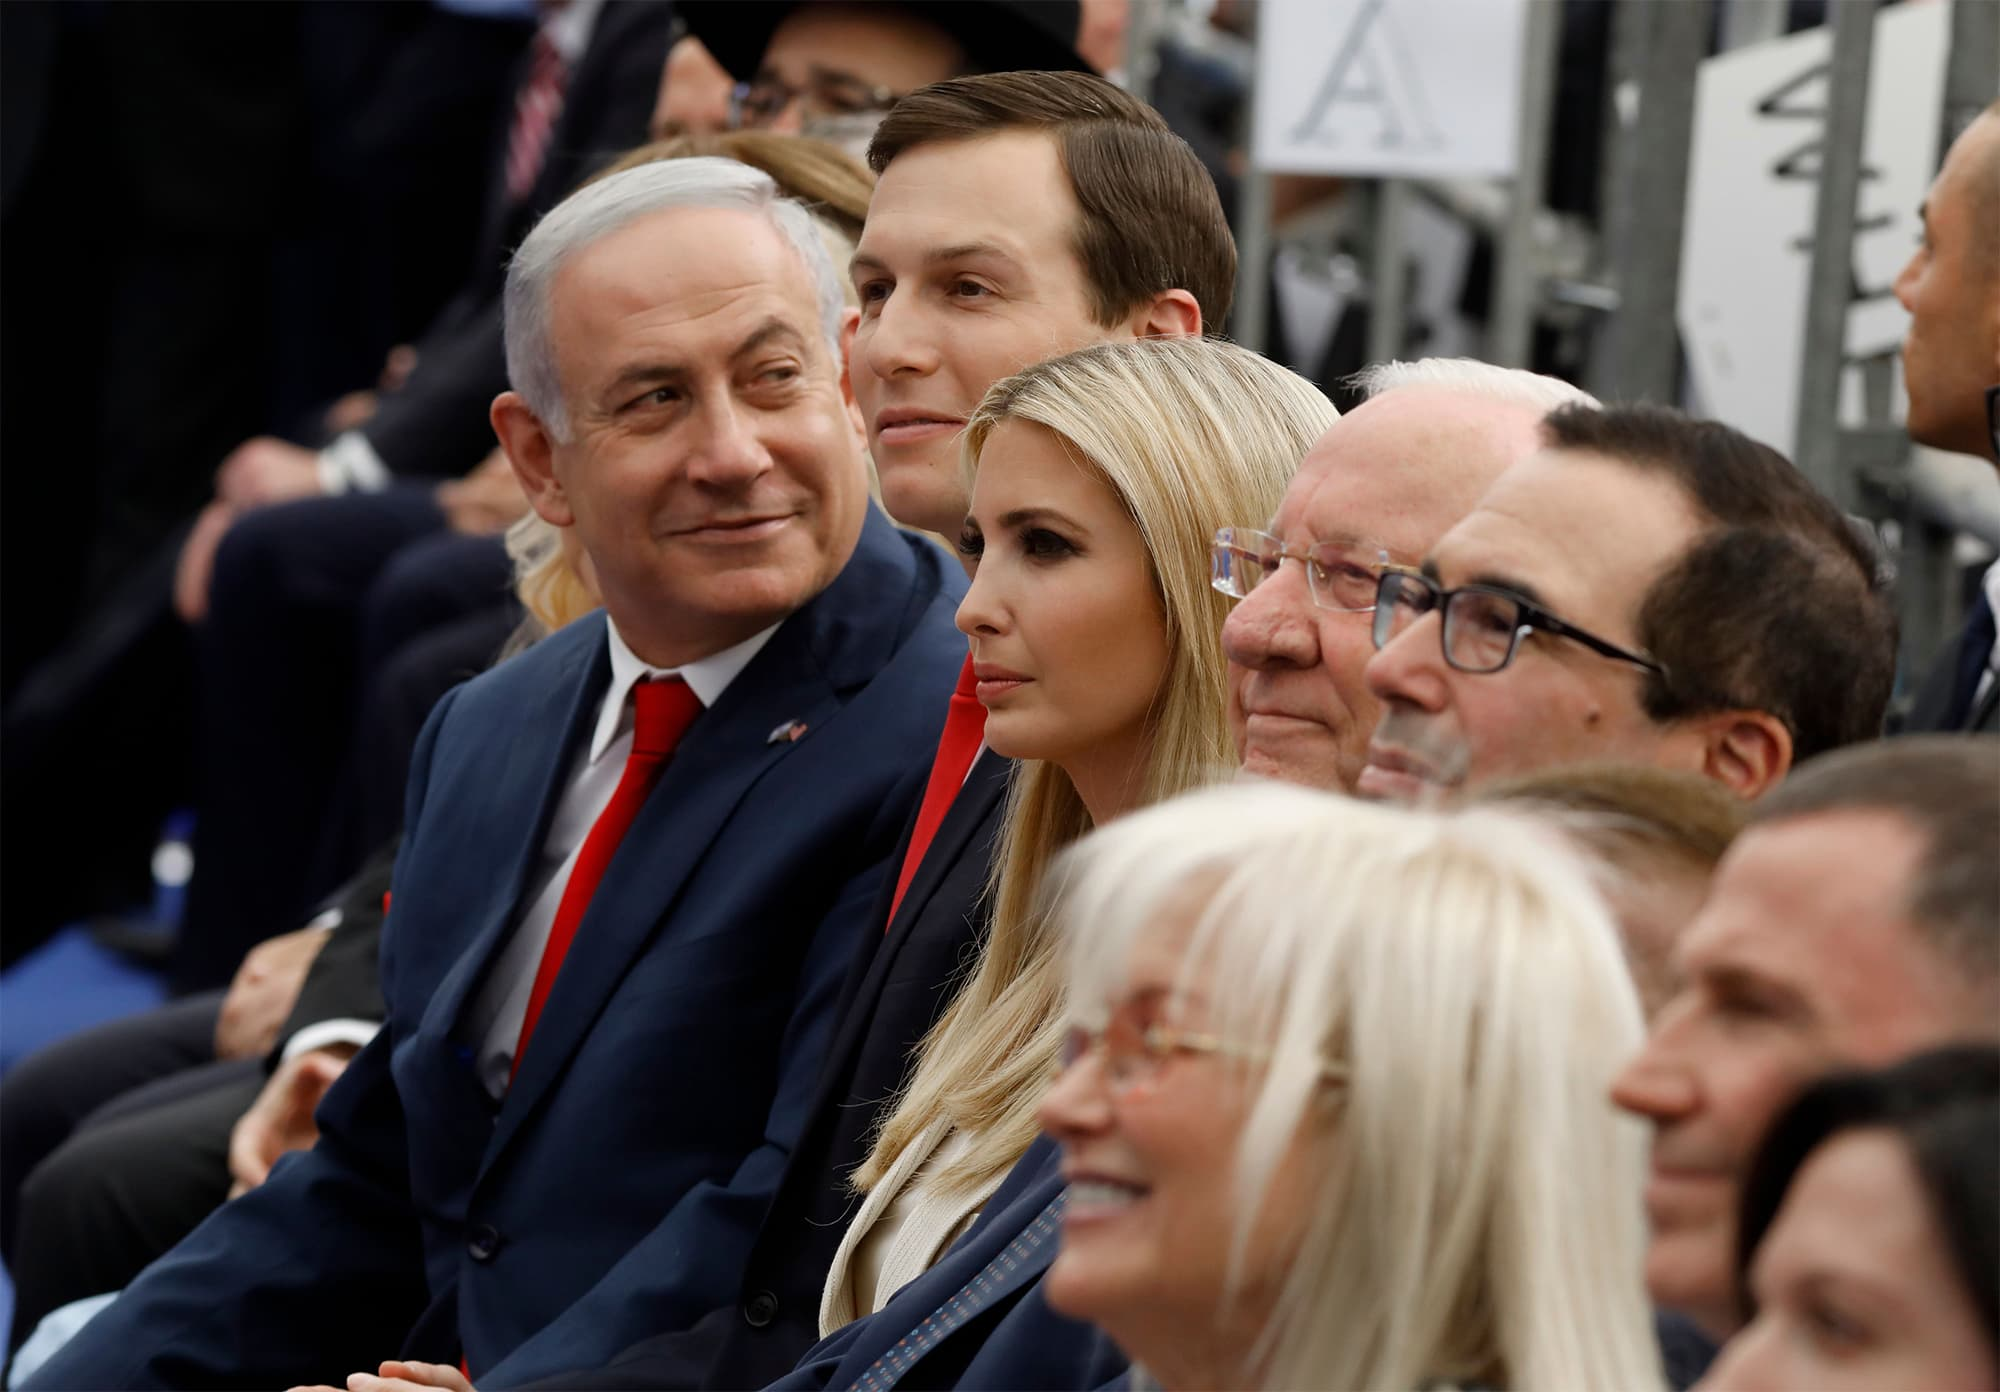 Israeli Prime Minister Benjamin Netanyahu (L), Senior White House Adviser Jared Kushner (C-R), US President's daughter Ivanka Trump (3rd R), US Treasury Secretary Steve Mnuchin (R) and Israel's President Reuven Rivlin (2nd R) attend the opening of the US embassy in Jerusalem on May 14, 2018. — AFP